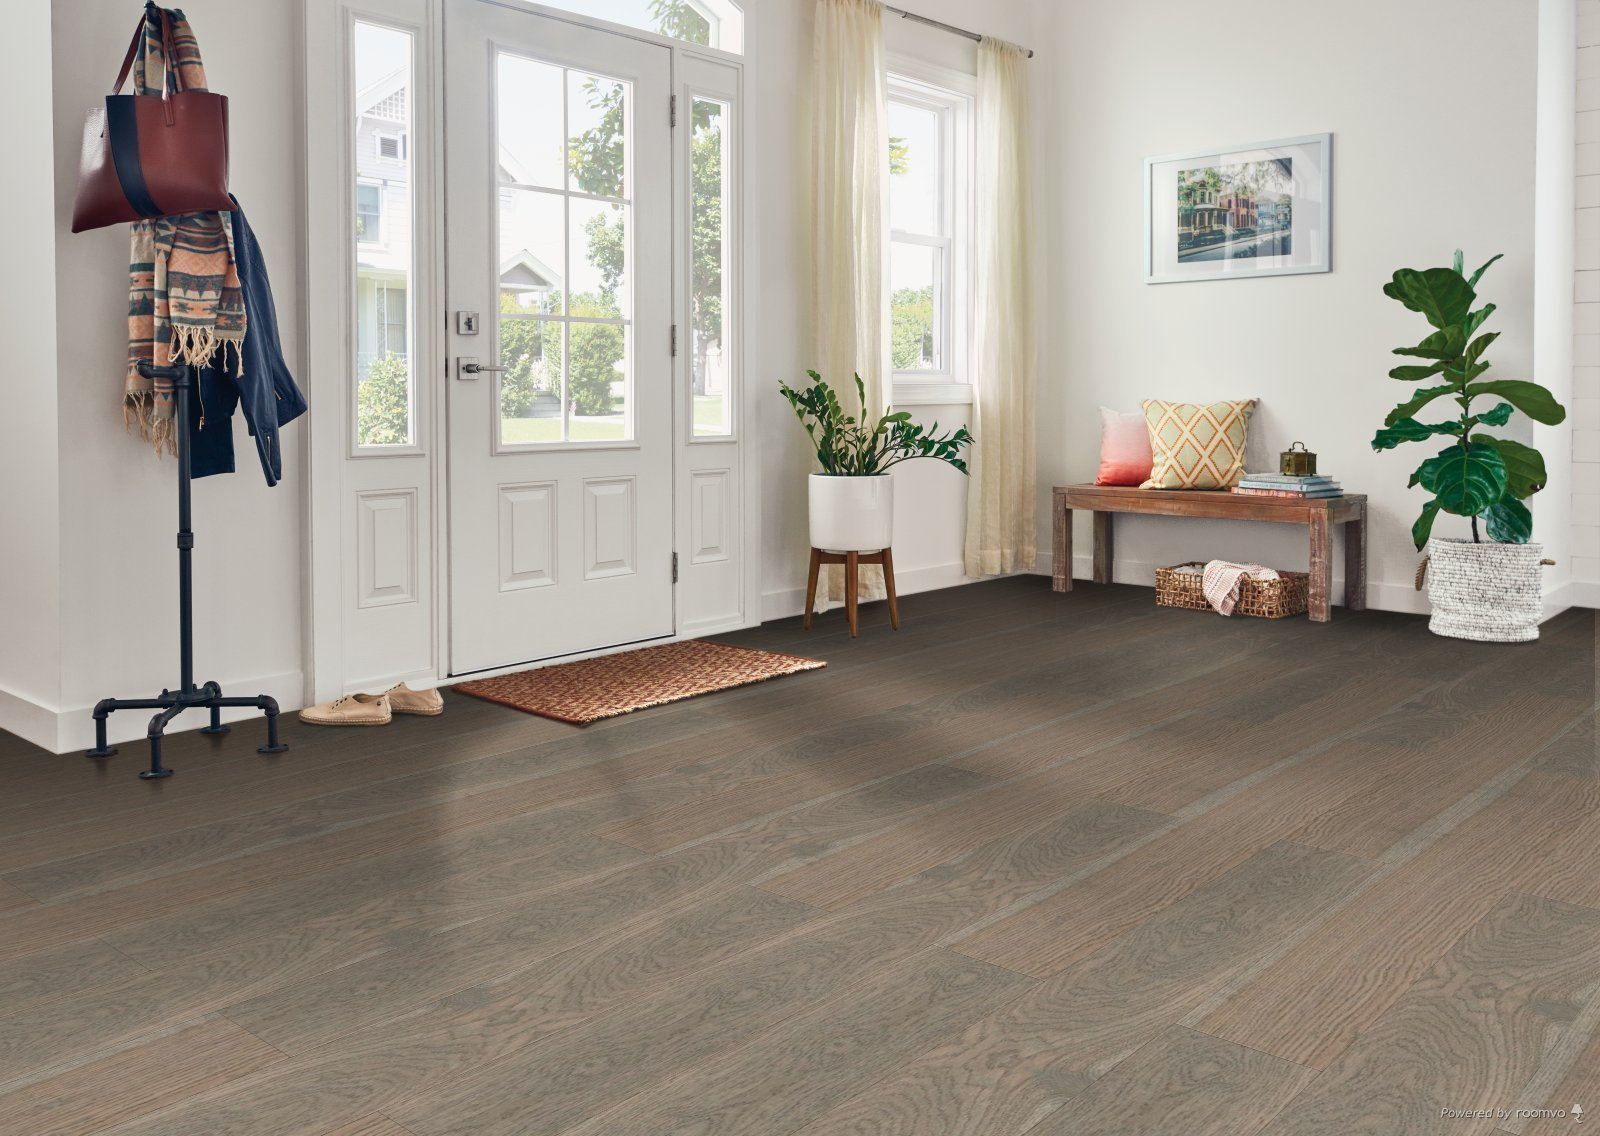 Waterproof Hardwood is Trending